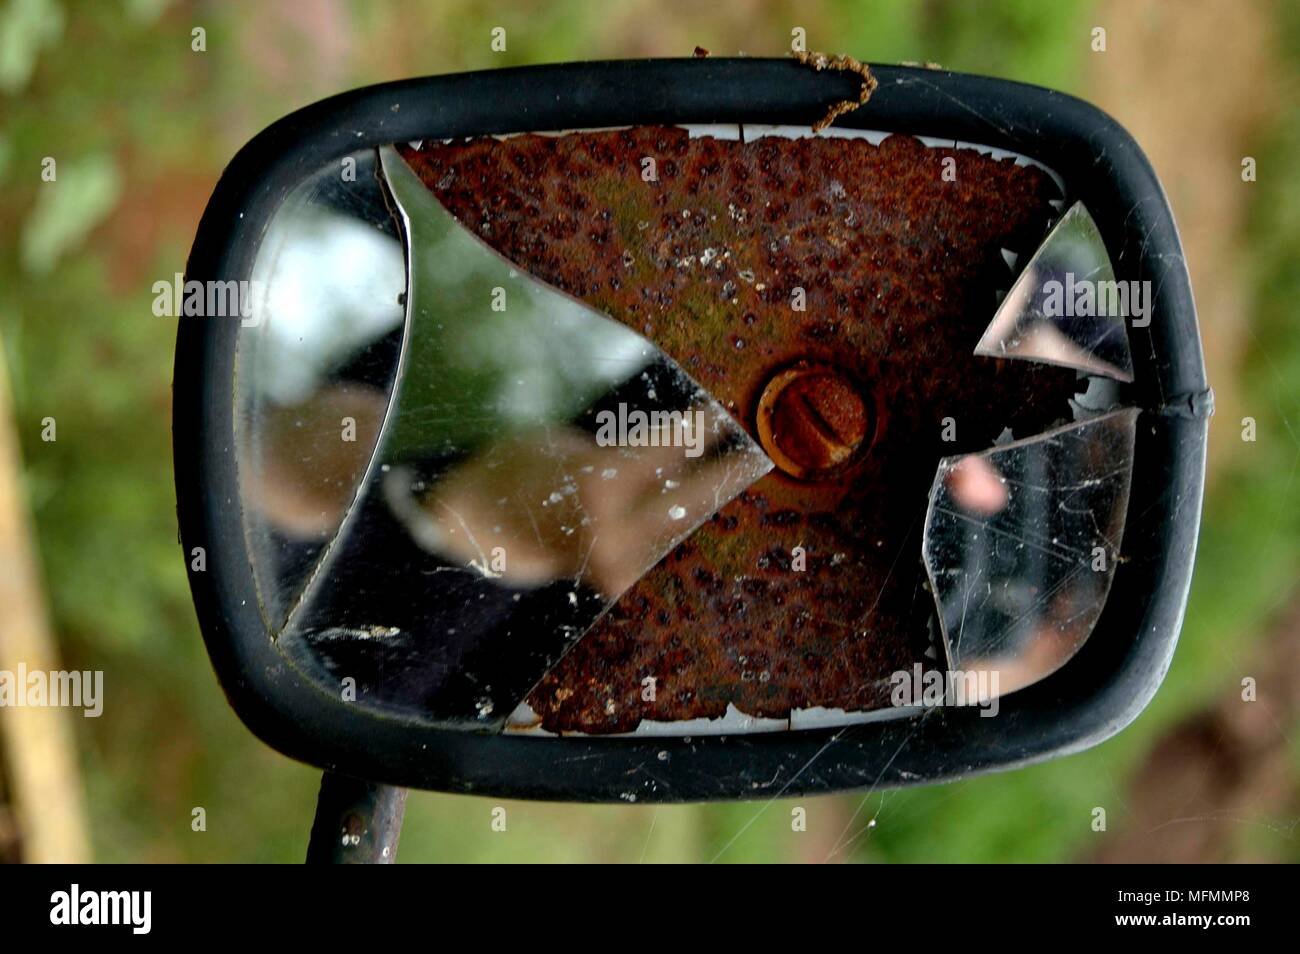 Rétroviseur Latéral Obligatoire Broken Rear View Mirror On Photos Broken Rear View Mirror On